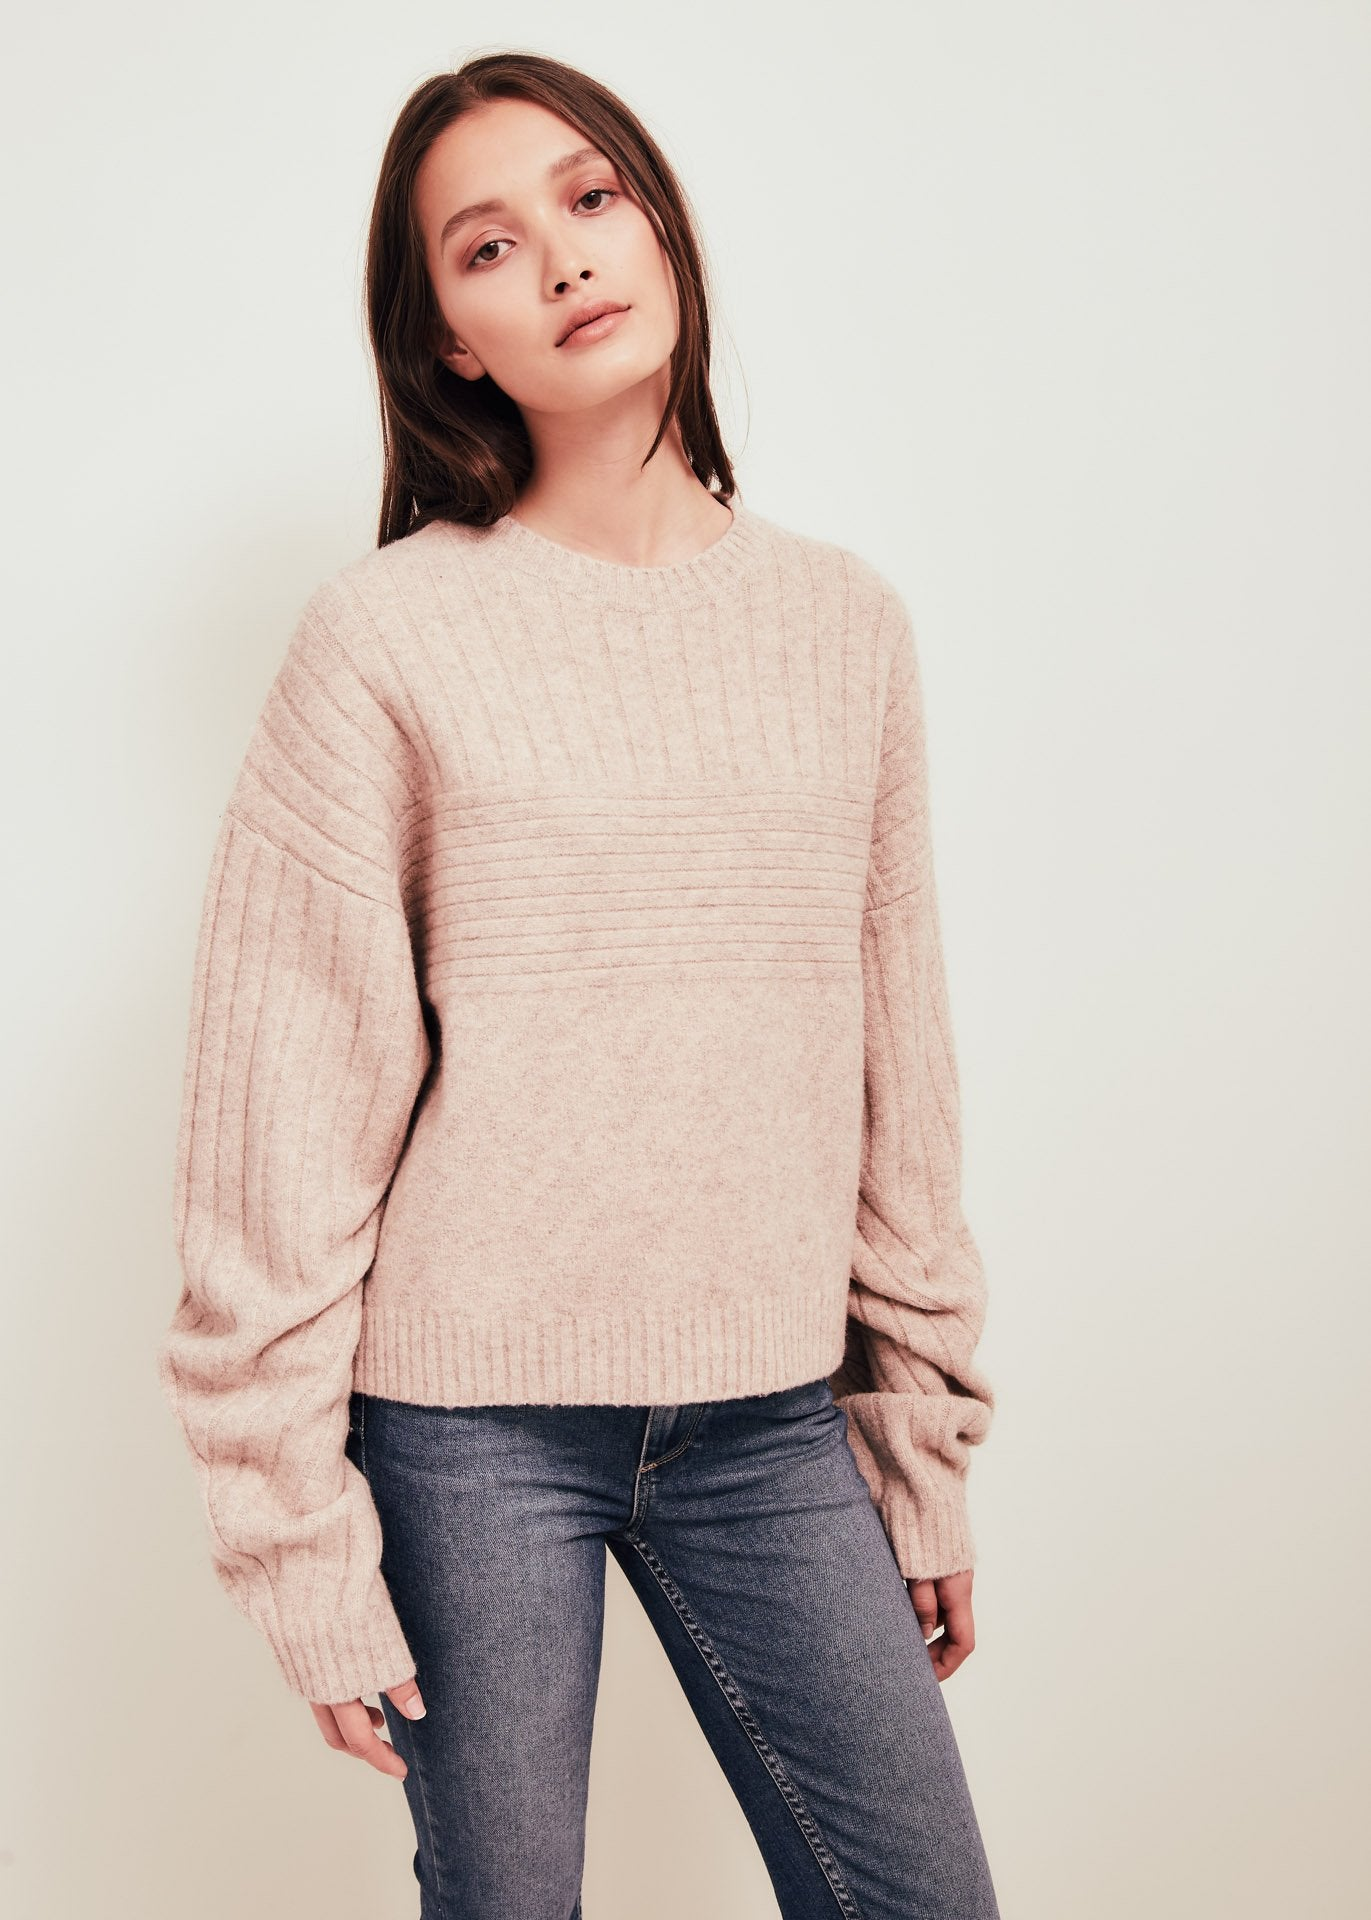 Pink Wool Blend Crew Neck Sweater - Talia